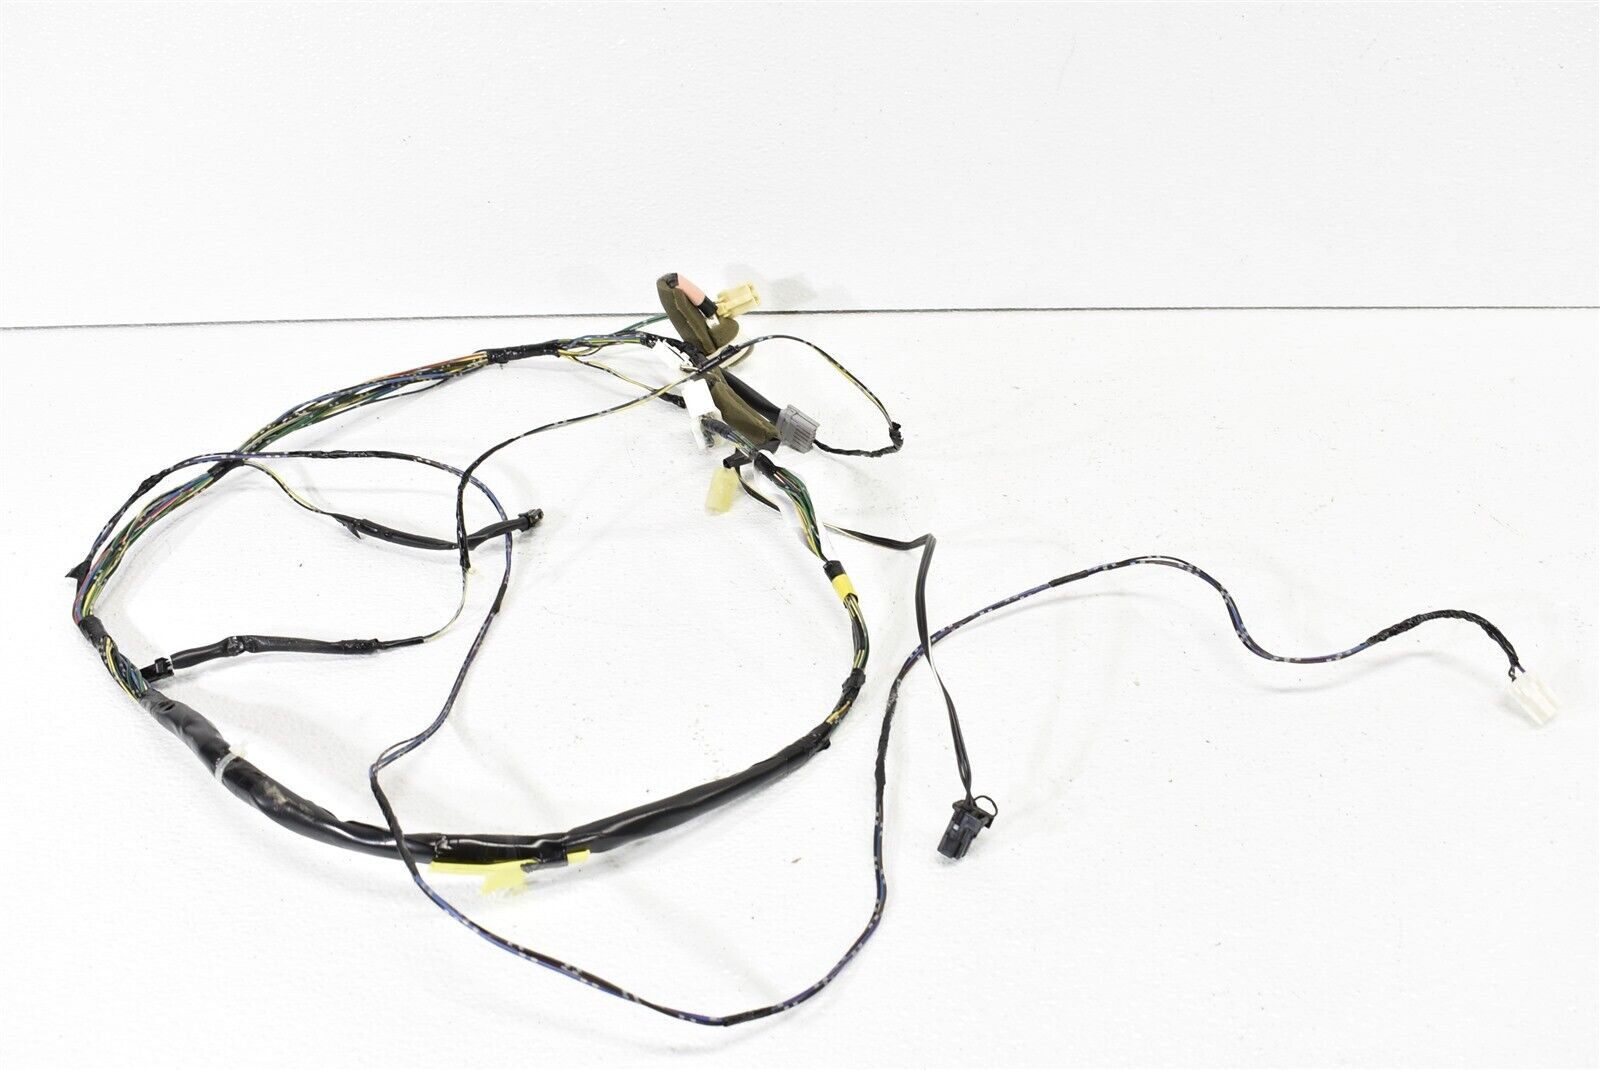 2007 subaru legacy outback xt roof right rh wiring harness